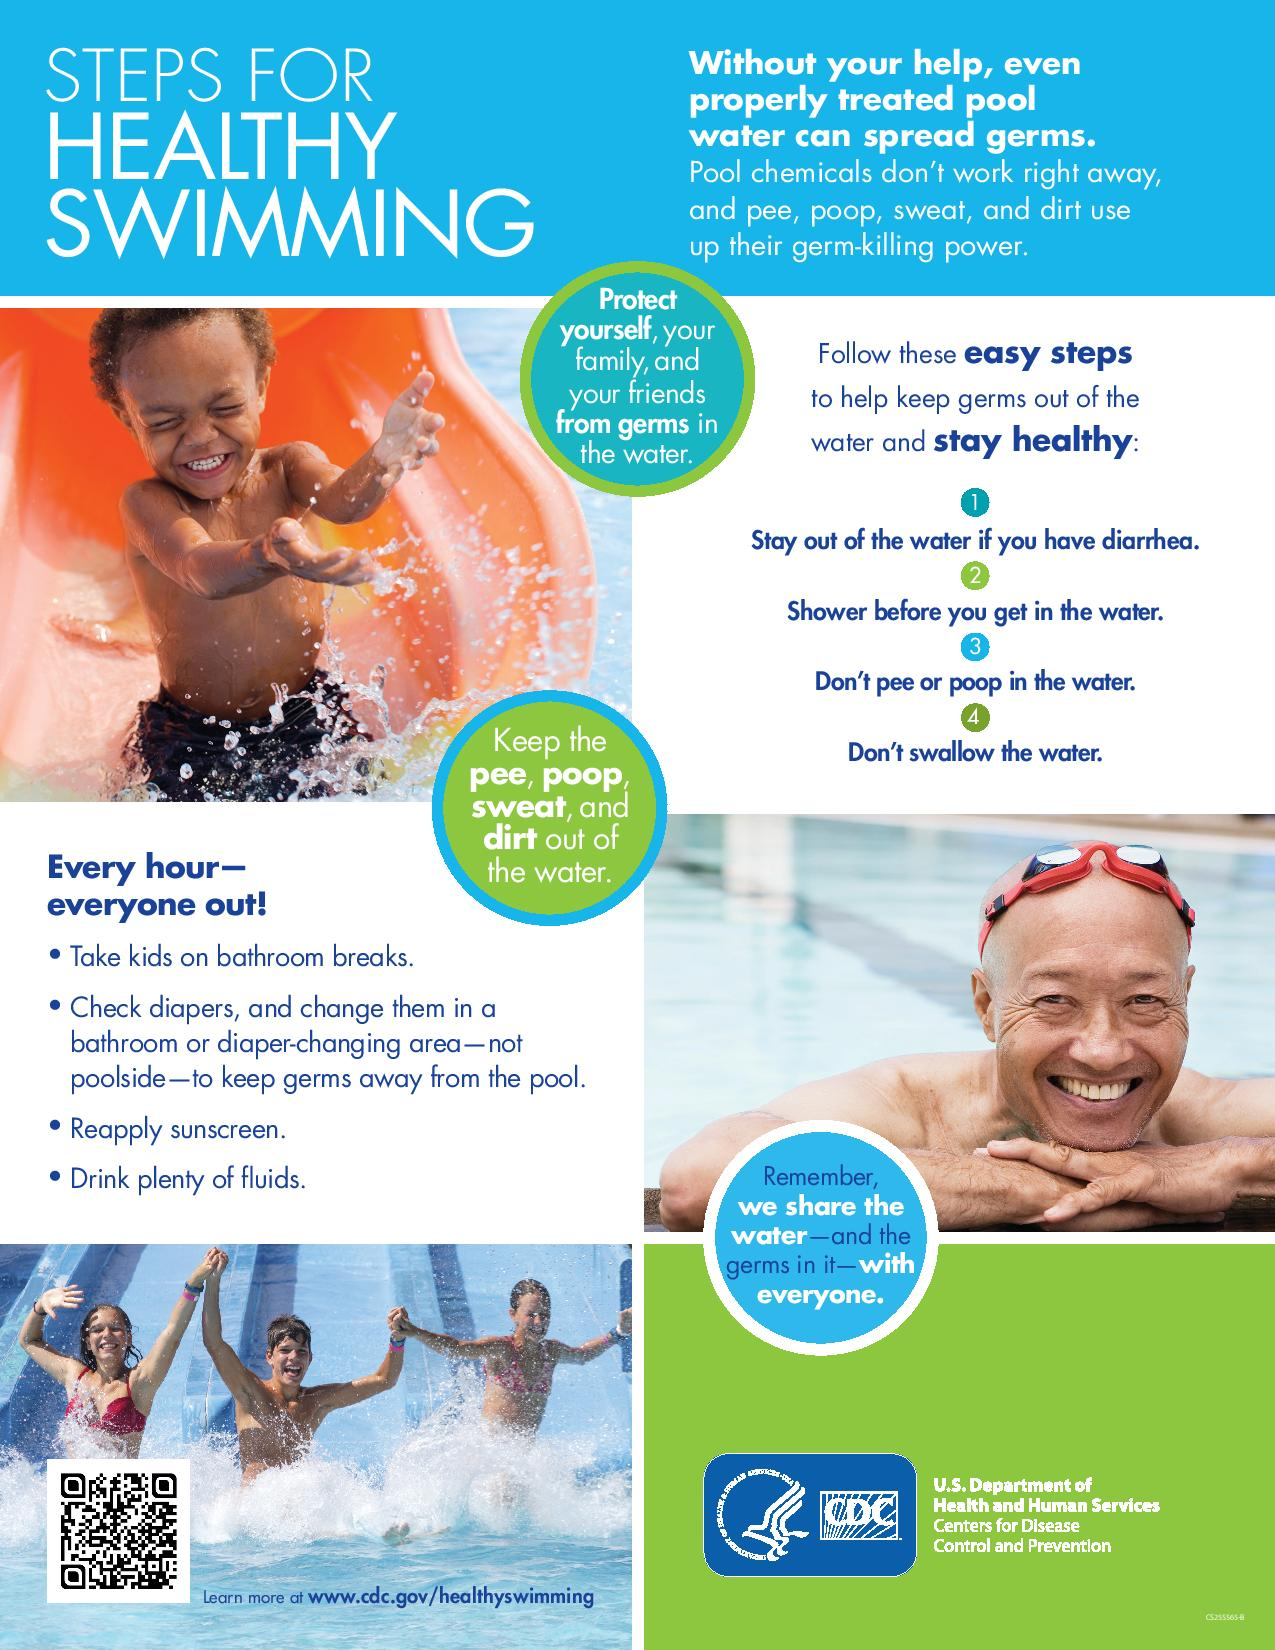 Steps for Healthy Swimming